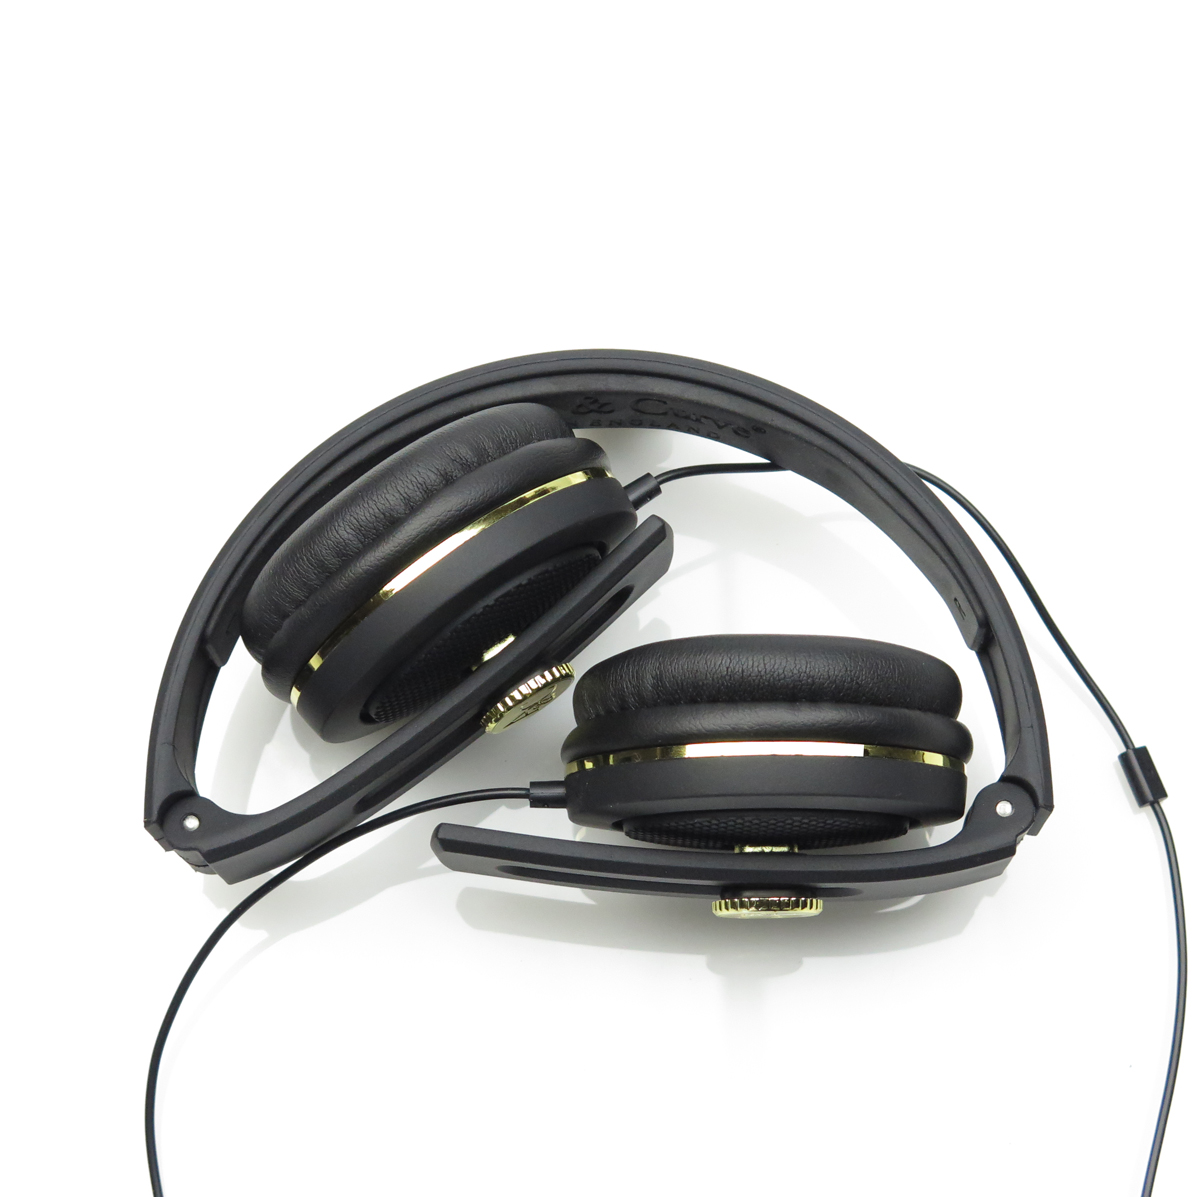 BEST HEADPHONES UNDER 100 POUNDS